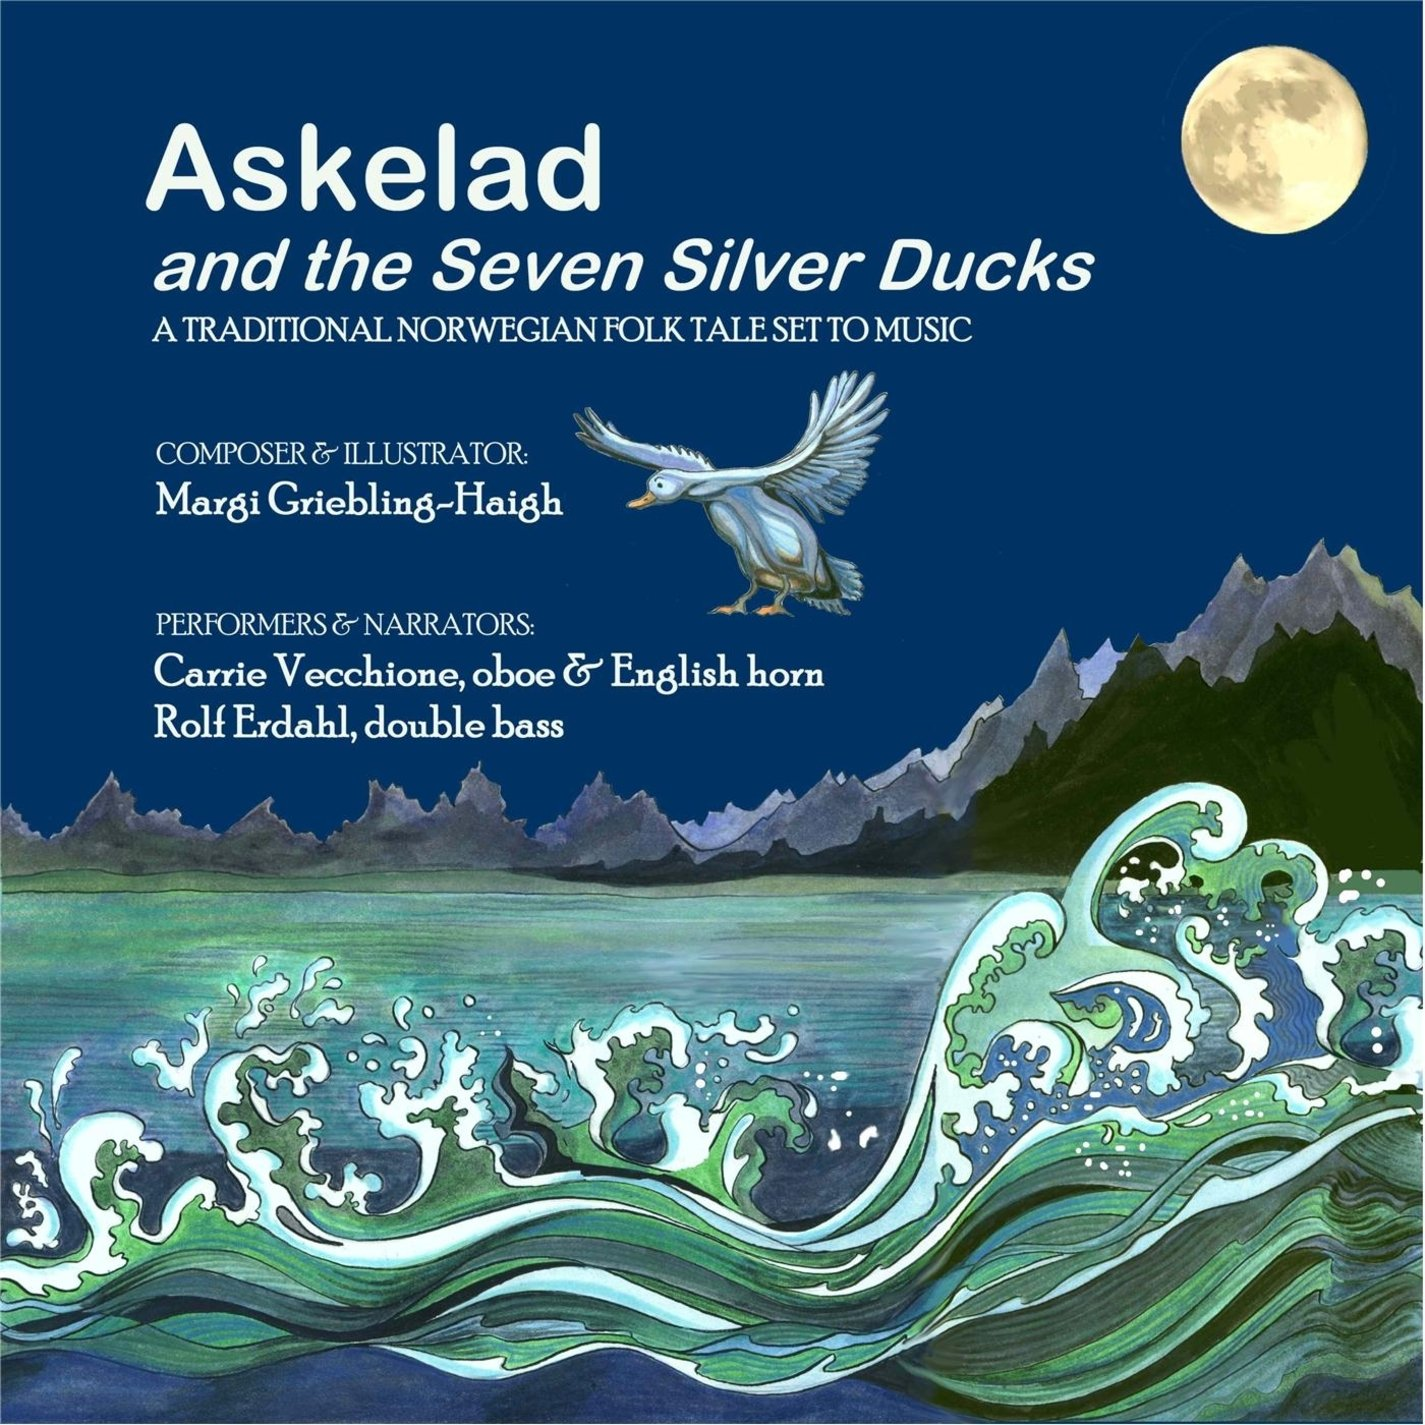 Askelad and the Seven Silver Ducks